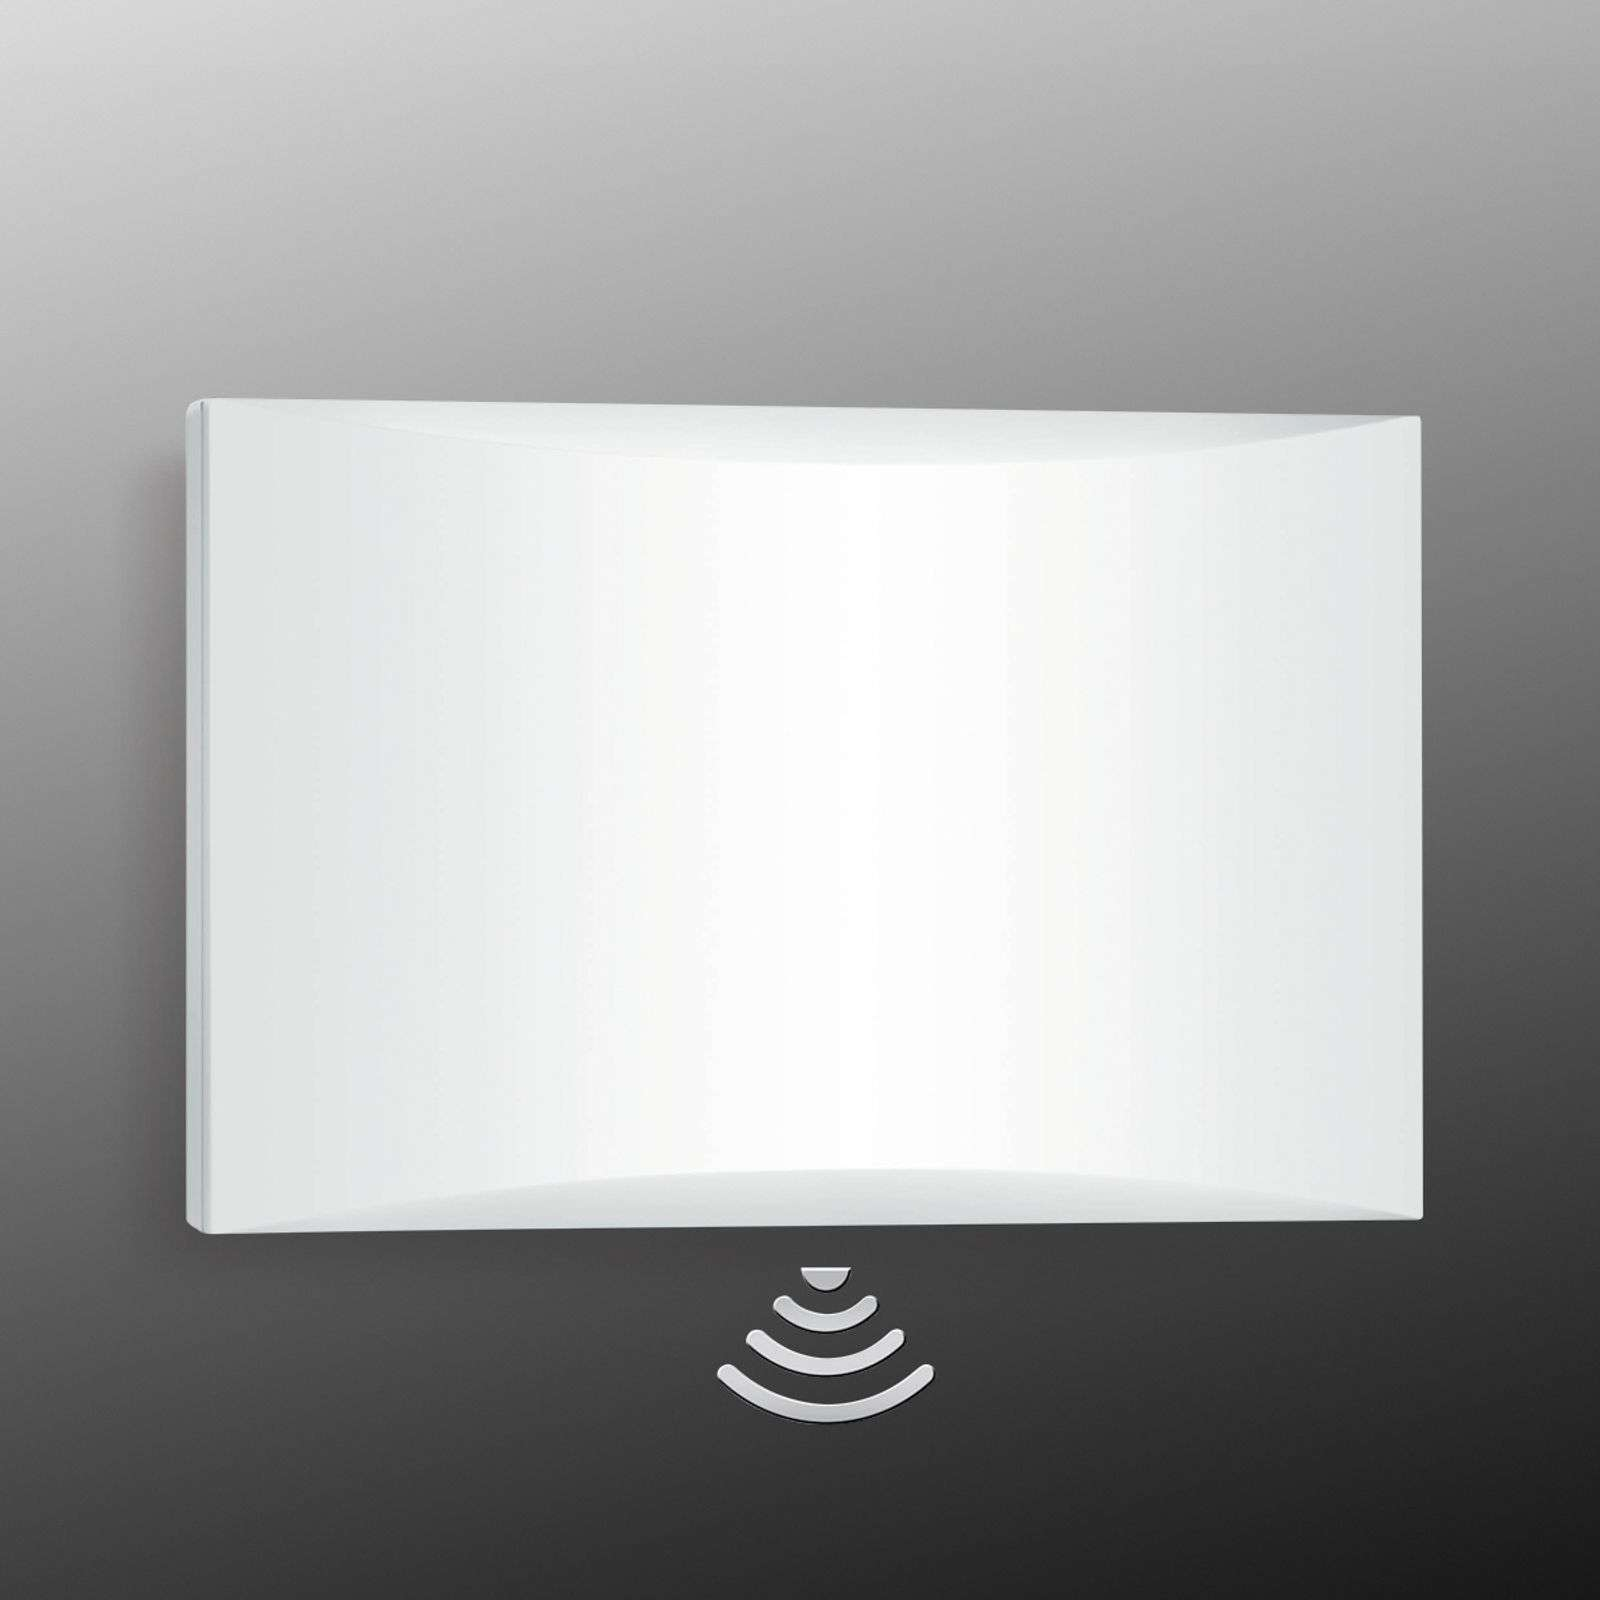 Lámpara de pared con sensor FRS 20 LED